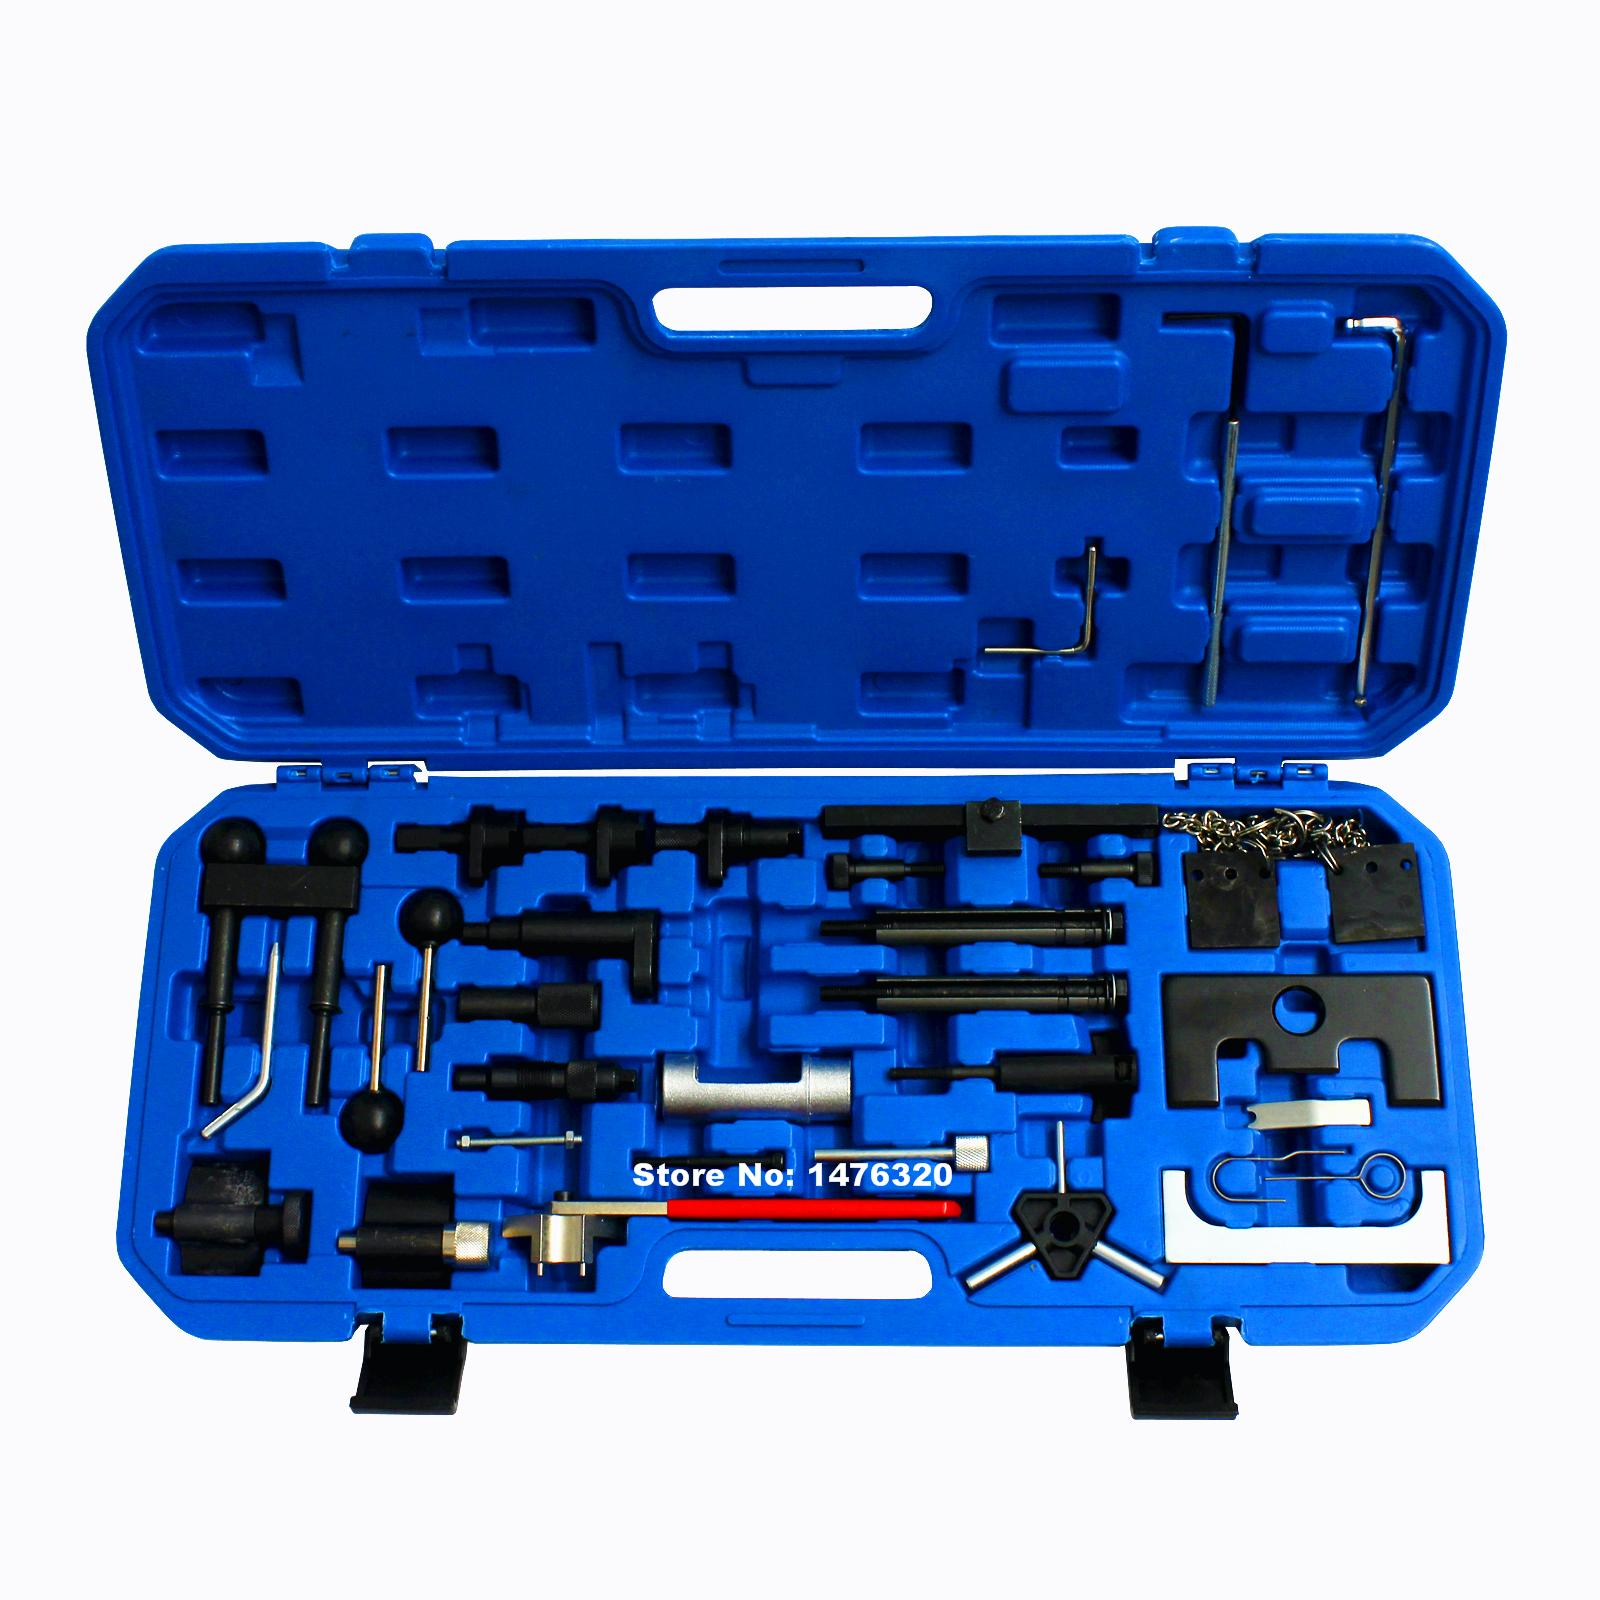 Automotive Diesel Petrol Engine Timing Tool Kit For VW AUDI A2/A3/S3/A4/A6/TT & 1.2/1.4/1.6/1.8/1.8T/2.0 AT2055 automotive diesel petrol engine timing tool kit for vw audi a2 a3 s3 a4 a6 tt